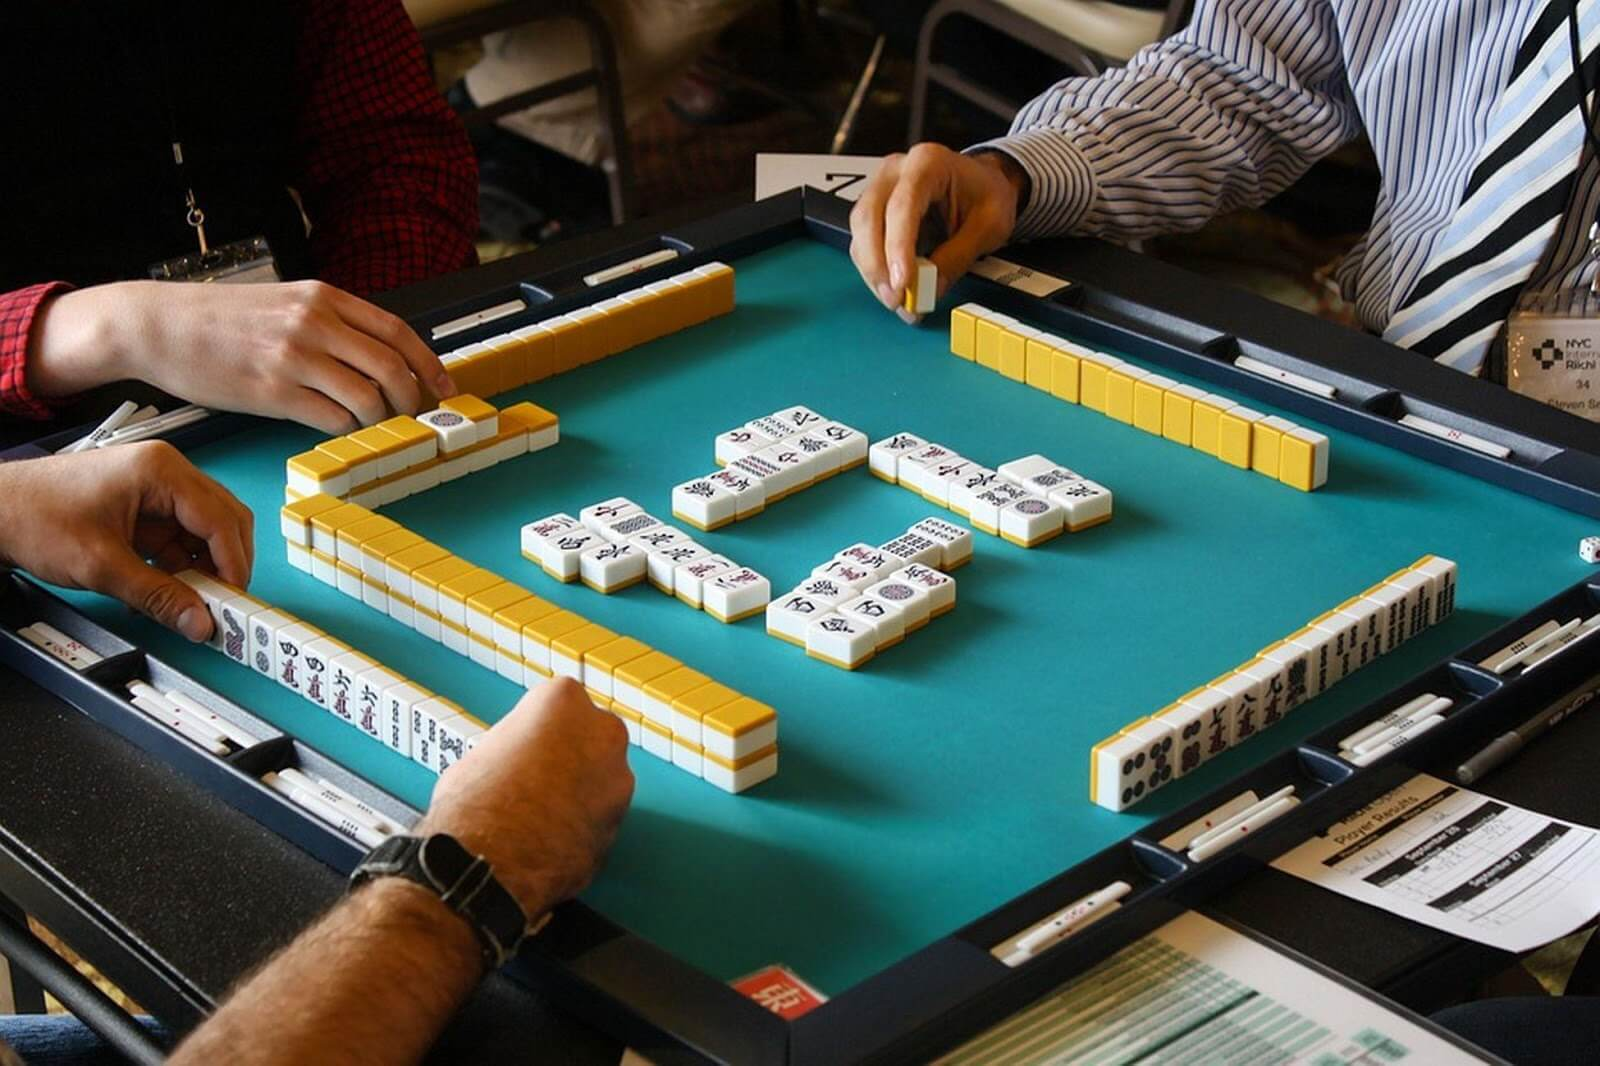 Playing mahjong with friends